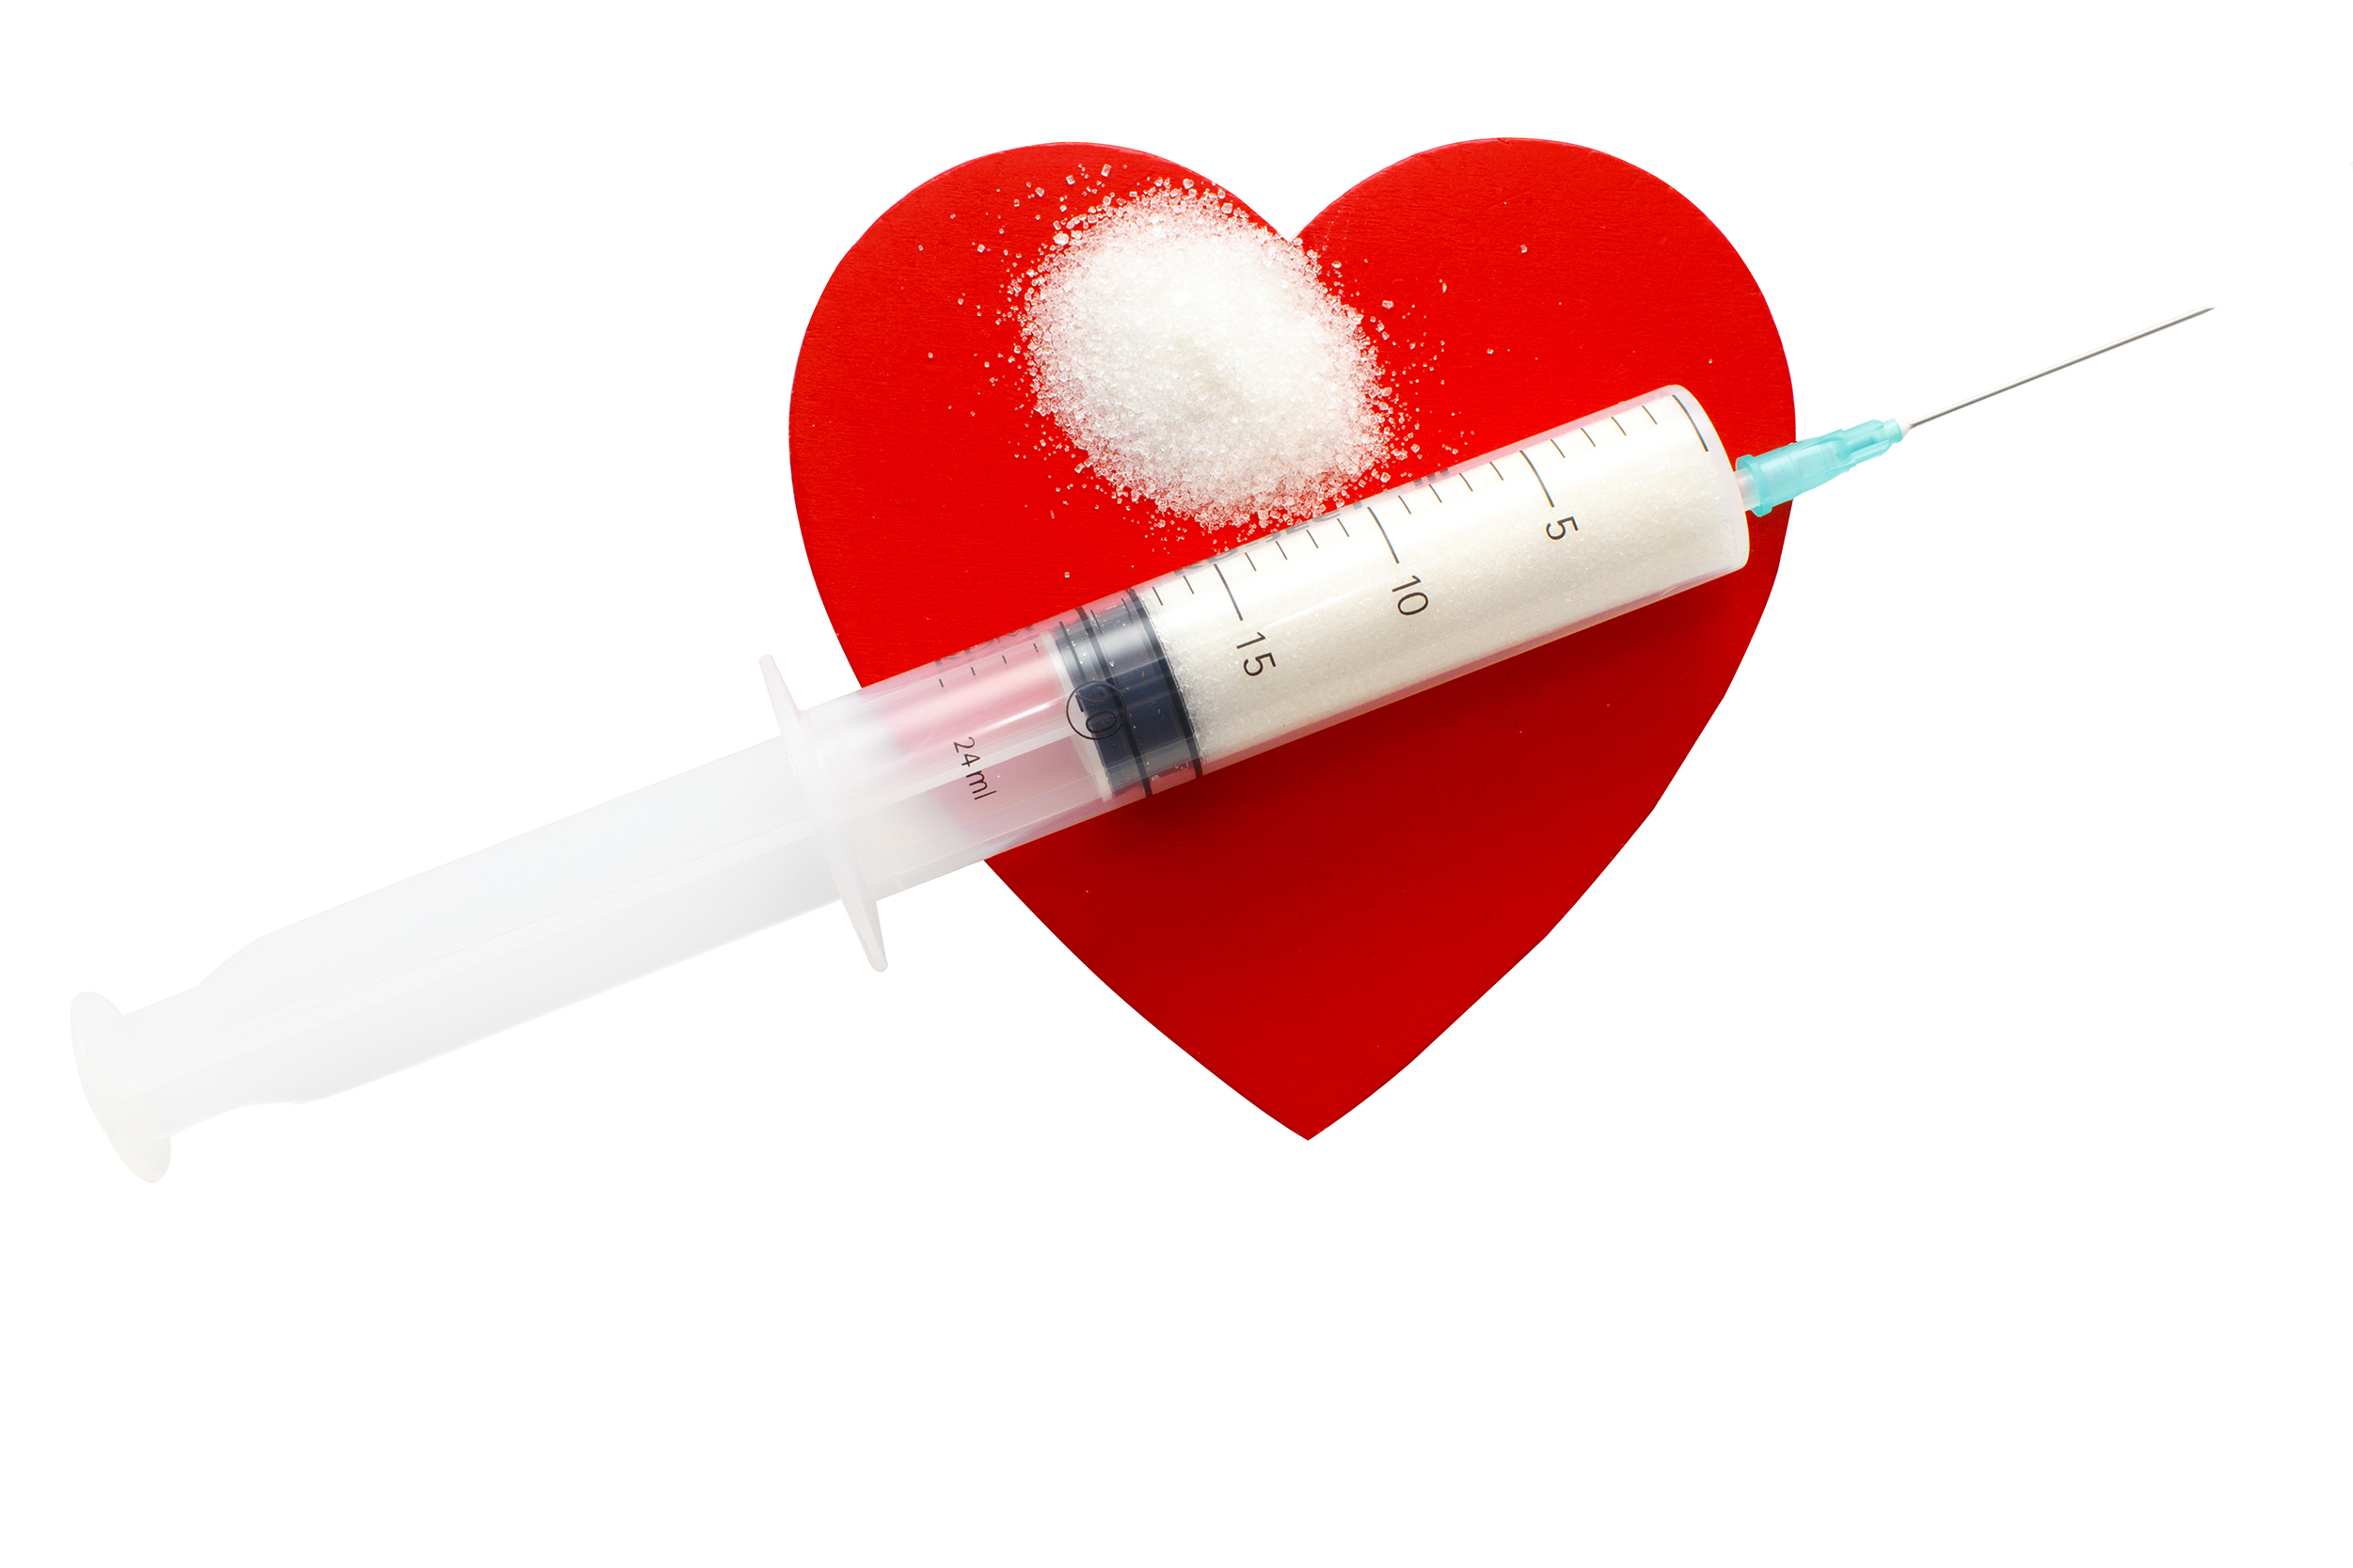 DiabetesHeartDisease_iStock_82917699_MEDIUM.jpg